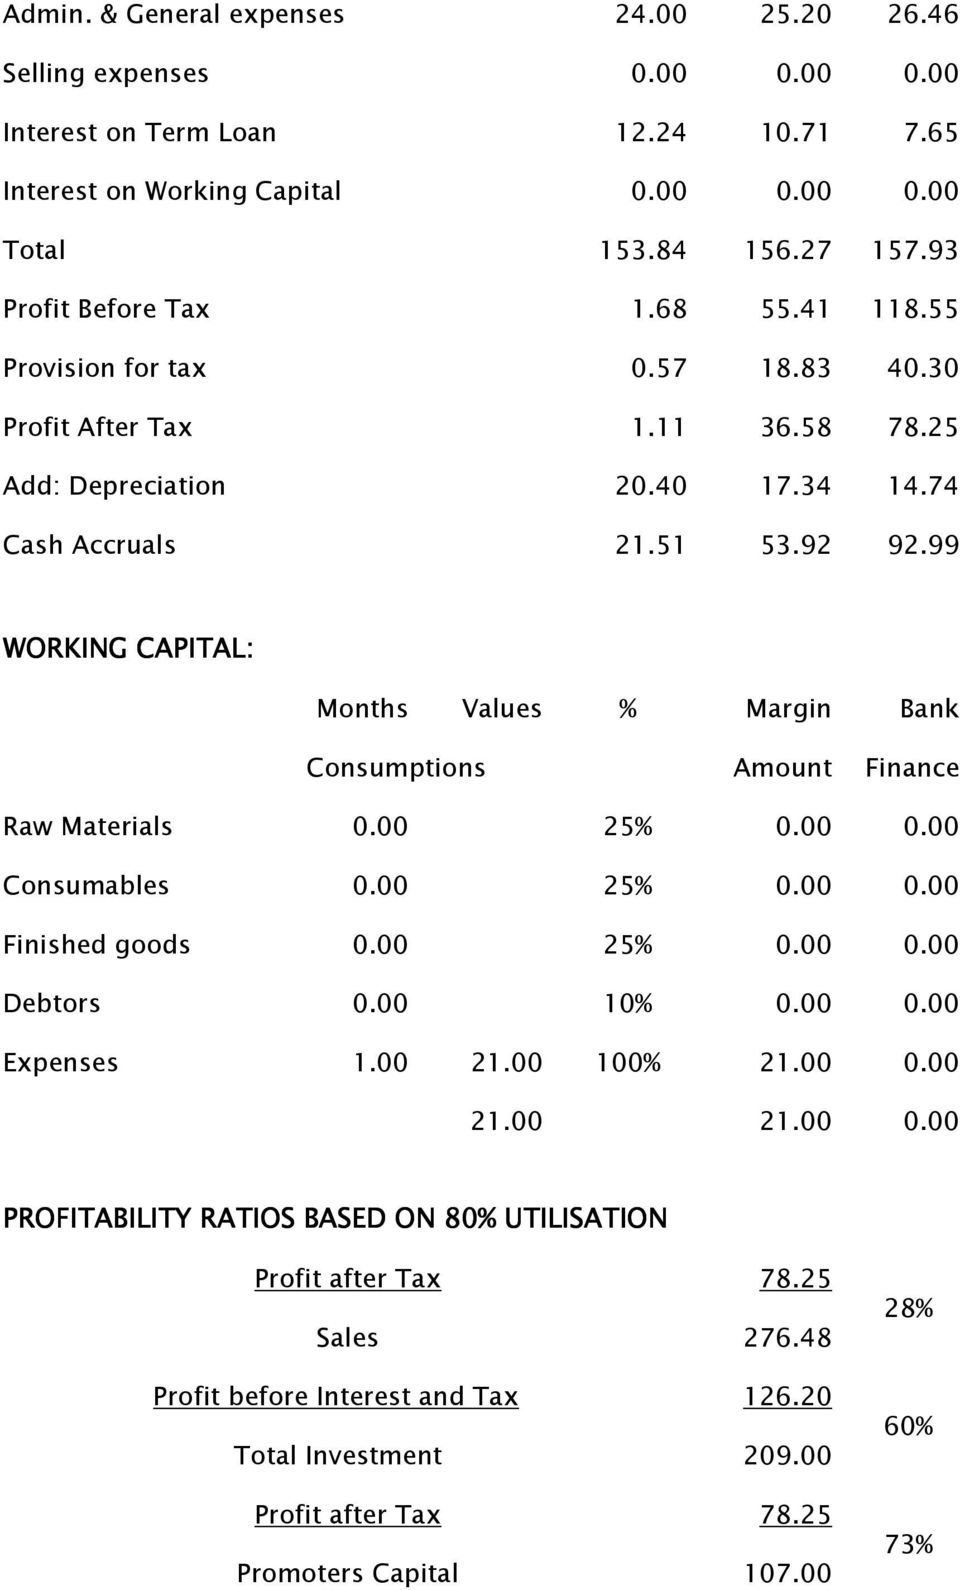 99 WORKING CAPITAL: Months Values % Margin Bank Consumptions Amount Finance Raw Materials 0.00 25% 0.00 0.00 Consumables 0.00 25% 0.00 0.00 Finished goods 0.00 25% 0.00 0.00 Debtors 0.00 10% 0.00 0.00 Expenses 1.